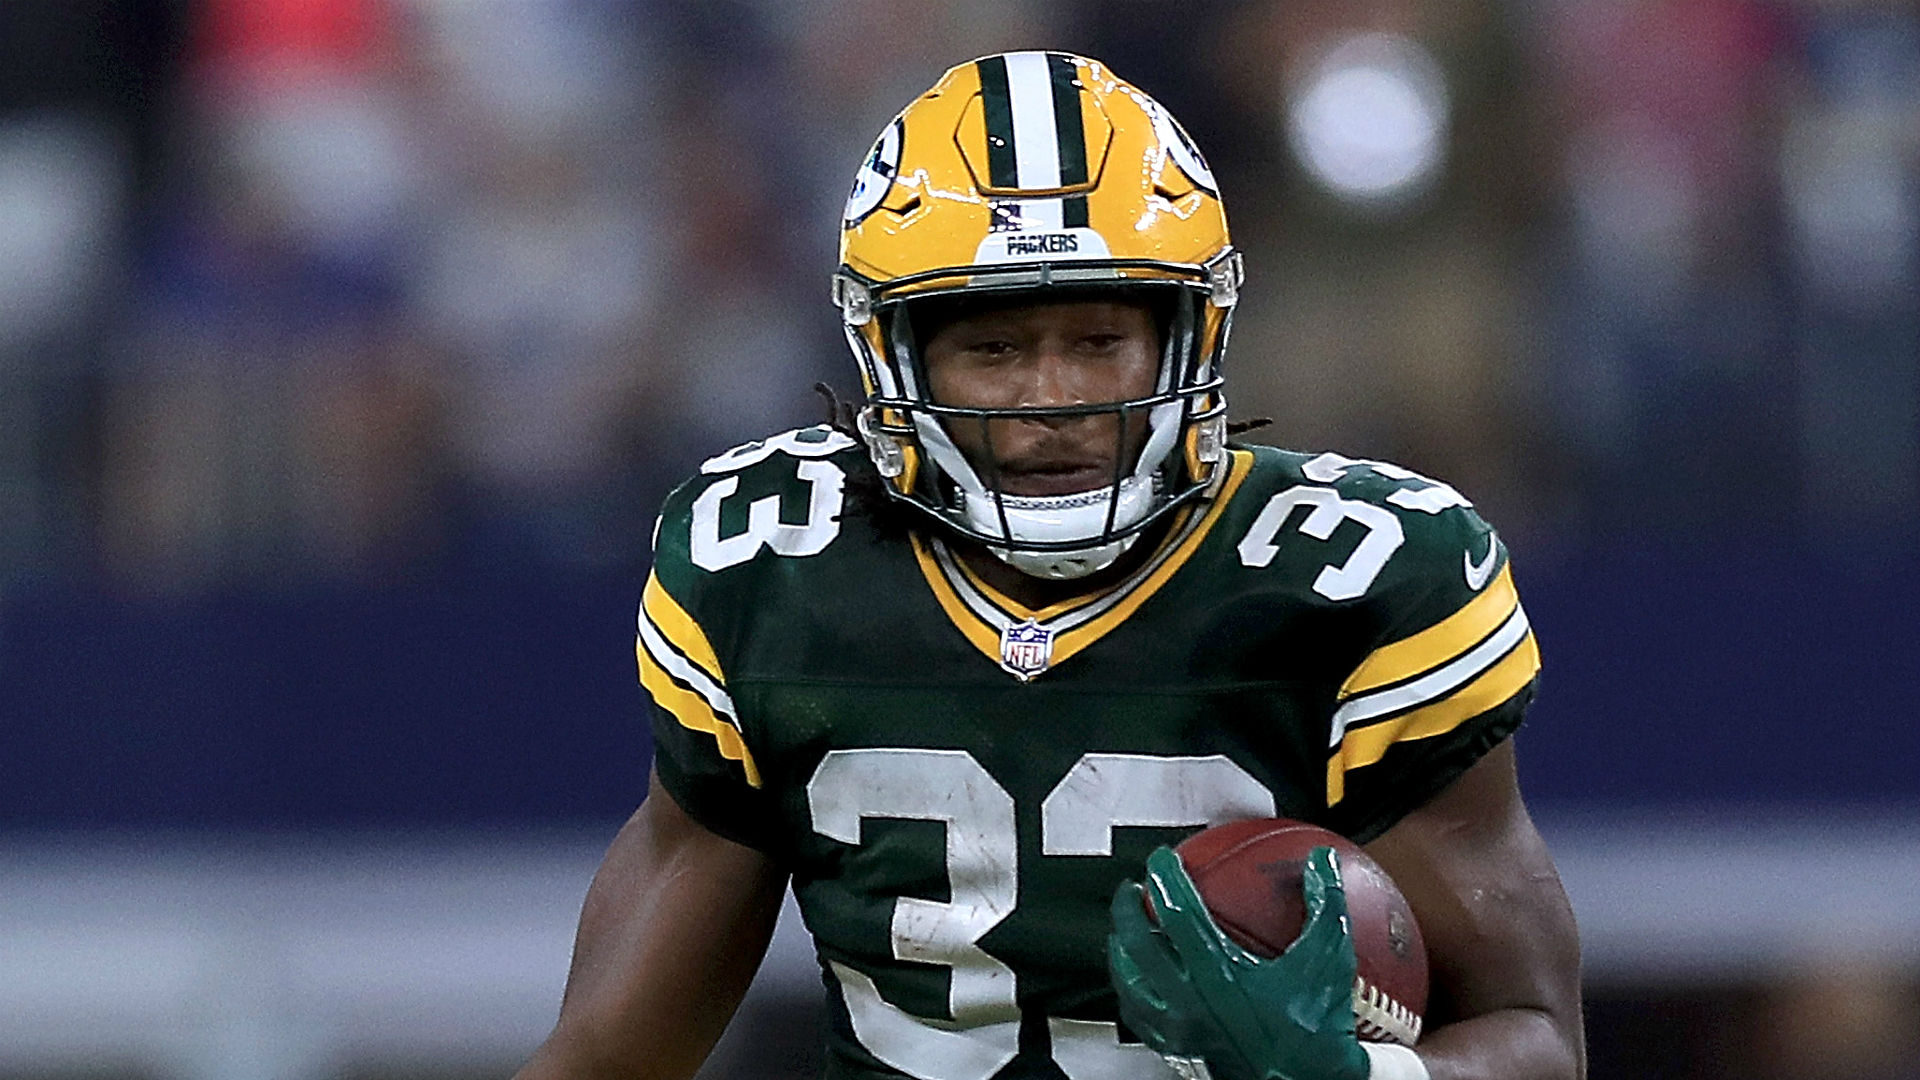 Packers: Running back Aaron Jones faces charges following October arrest